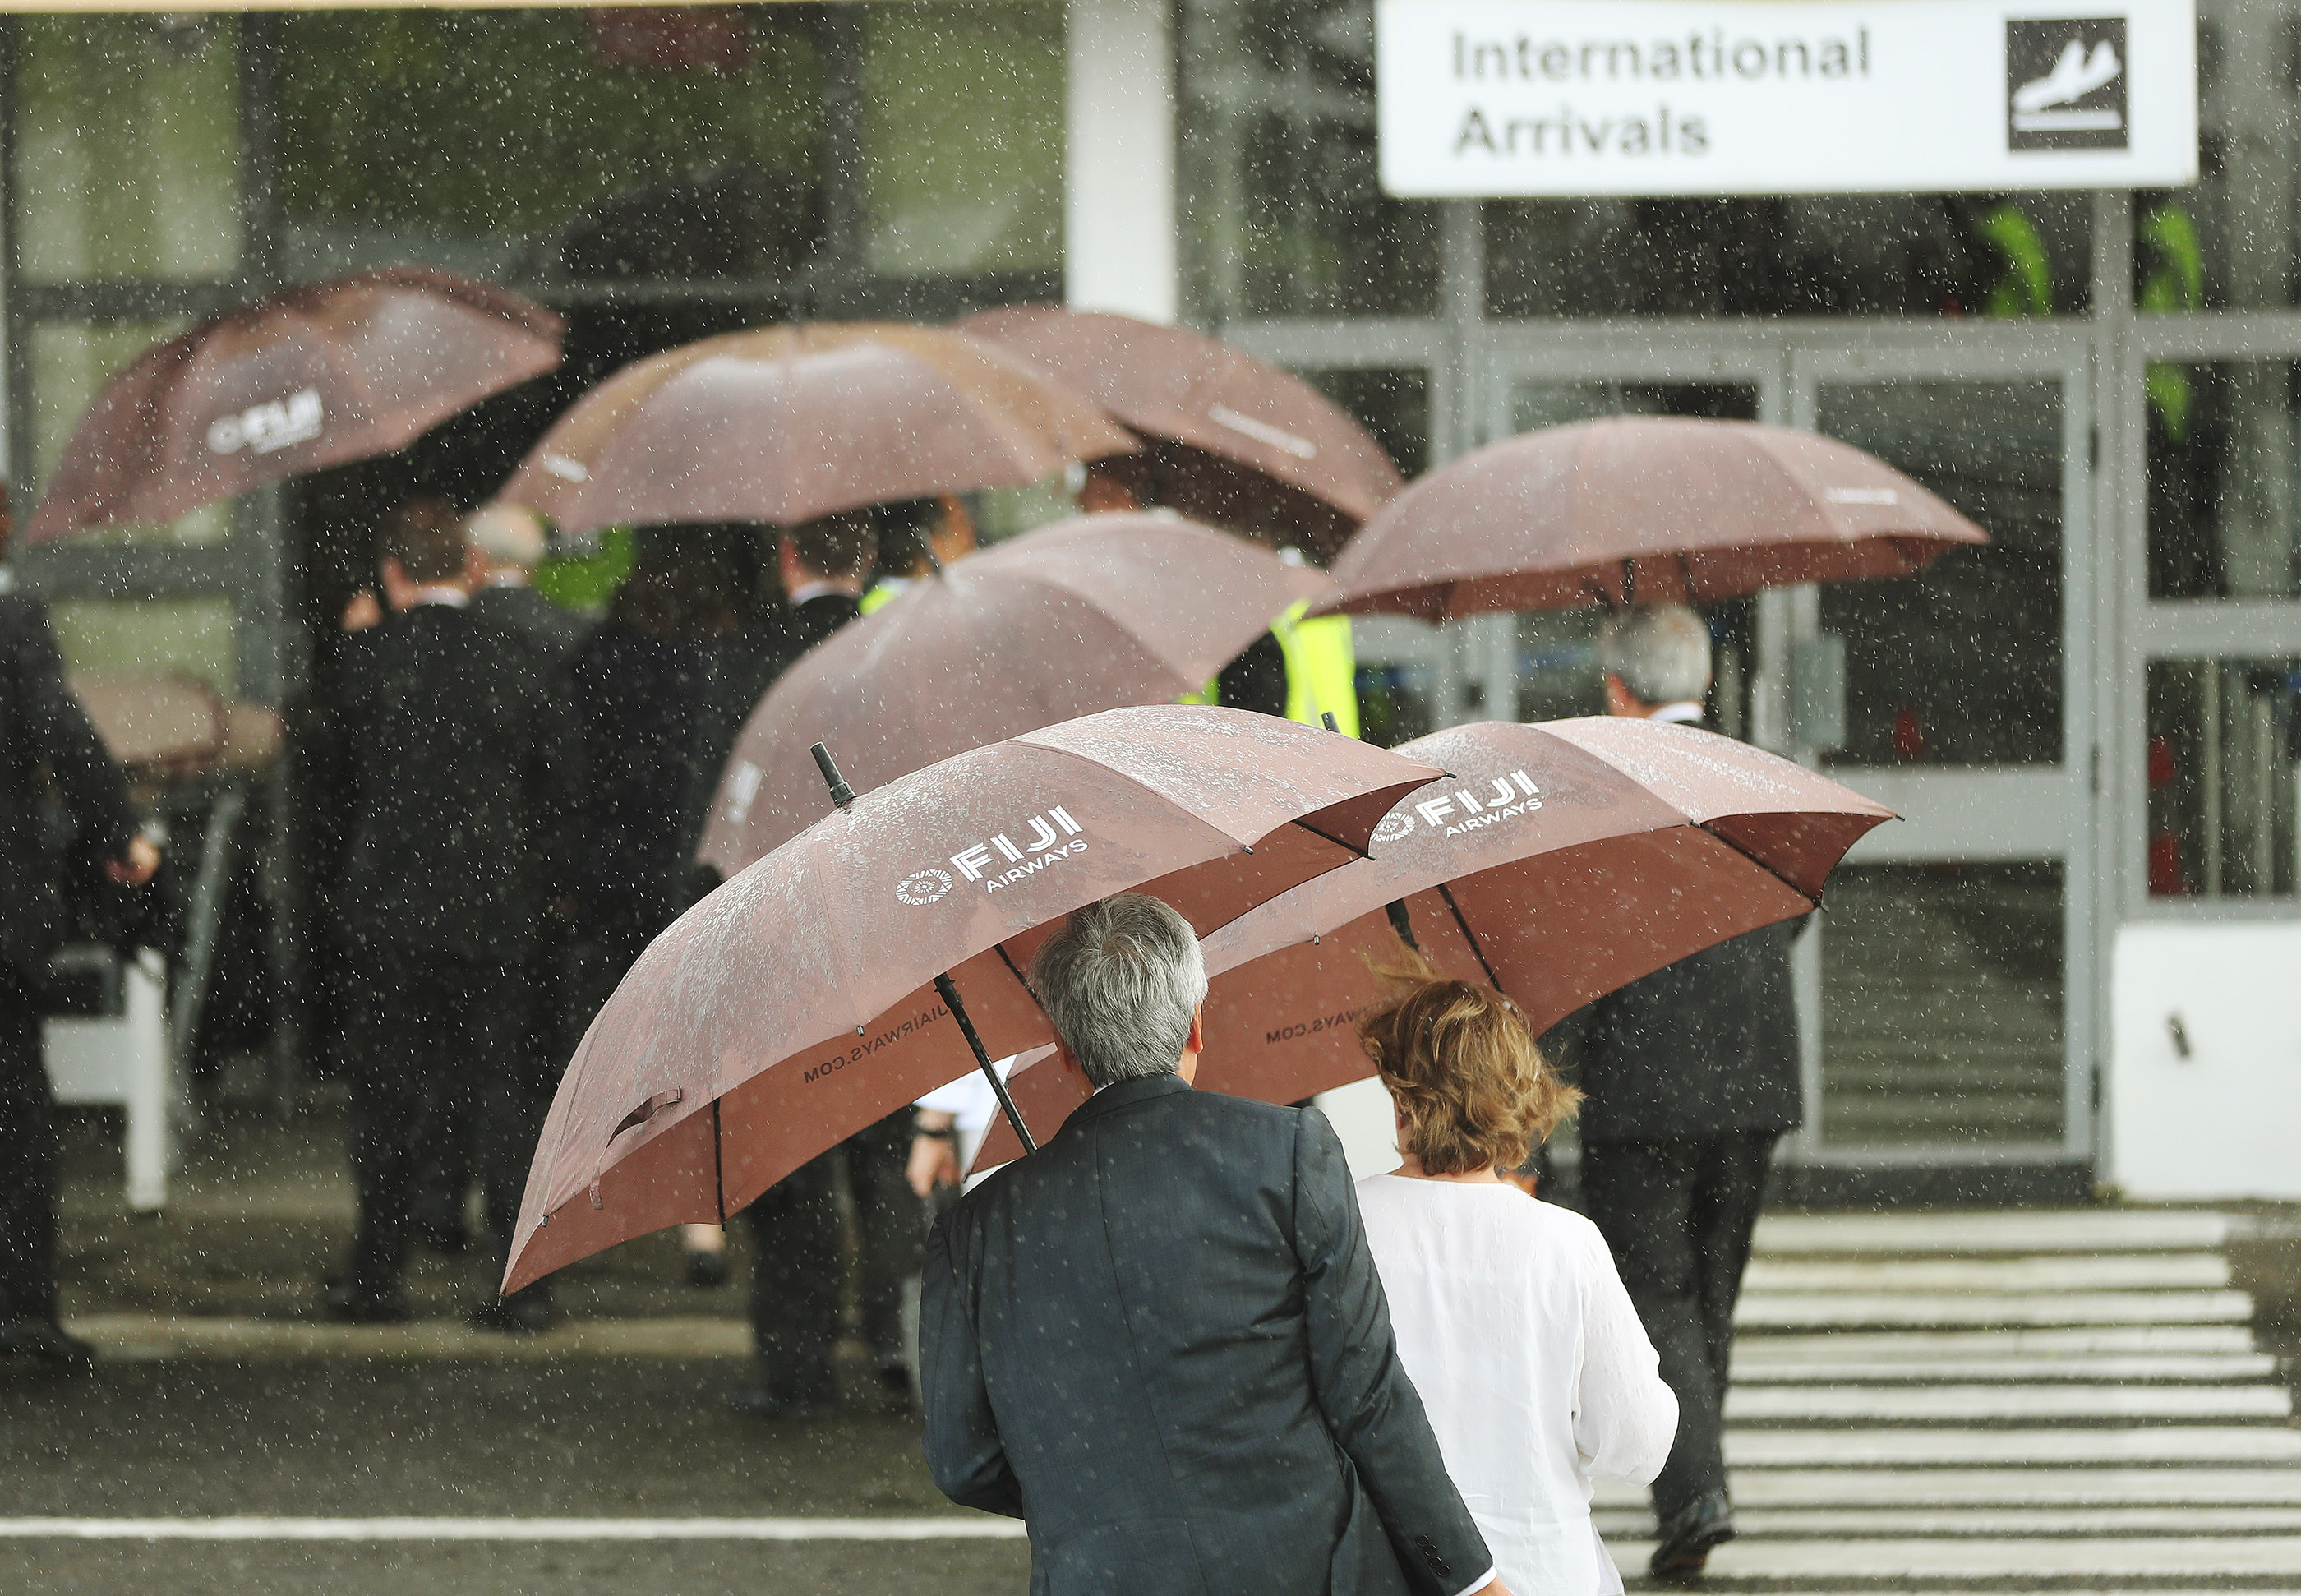 President Russell M. Nelson of The Church of Jesus Christ of Latter-day Saints and other general authorities leave the airplane in the rain prior to a devotional at Ratu Cakobau Park stadium in Nausori, Fiji, on May 22, 2019.